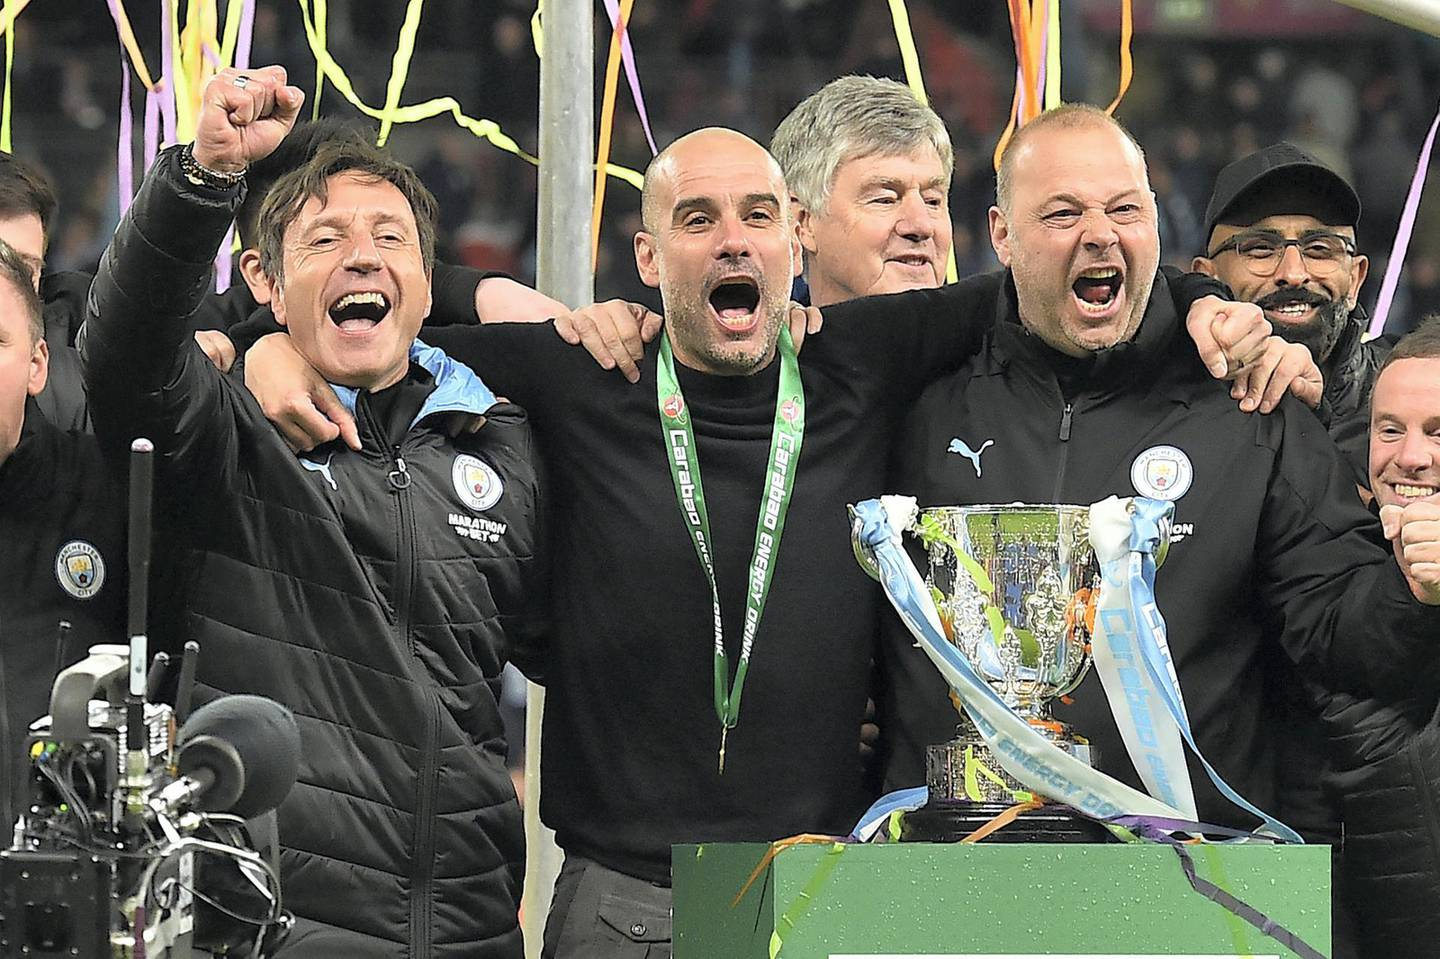 Manchester City's Spanish manager Pep Guardiola (C) celebrates with his backroom staff, Manchester City's Spanish assistant coach Rodolfo Borrell (R) as City players celebrate their win after the English League Cup final football match between Aston Villa and Manchester City at Wembley stadium in London on March 1, 2020. - Manchester City won the game 2-1. (Photo by Glyn KIRK / AFP)